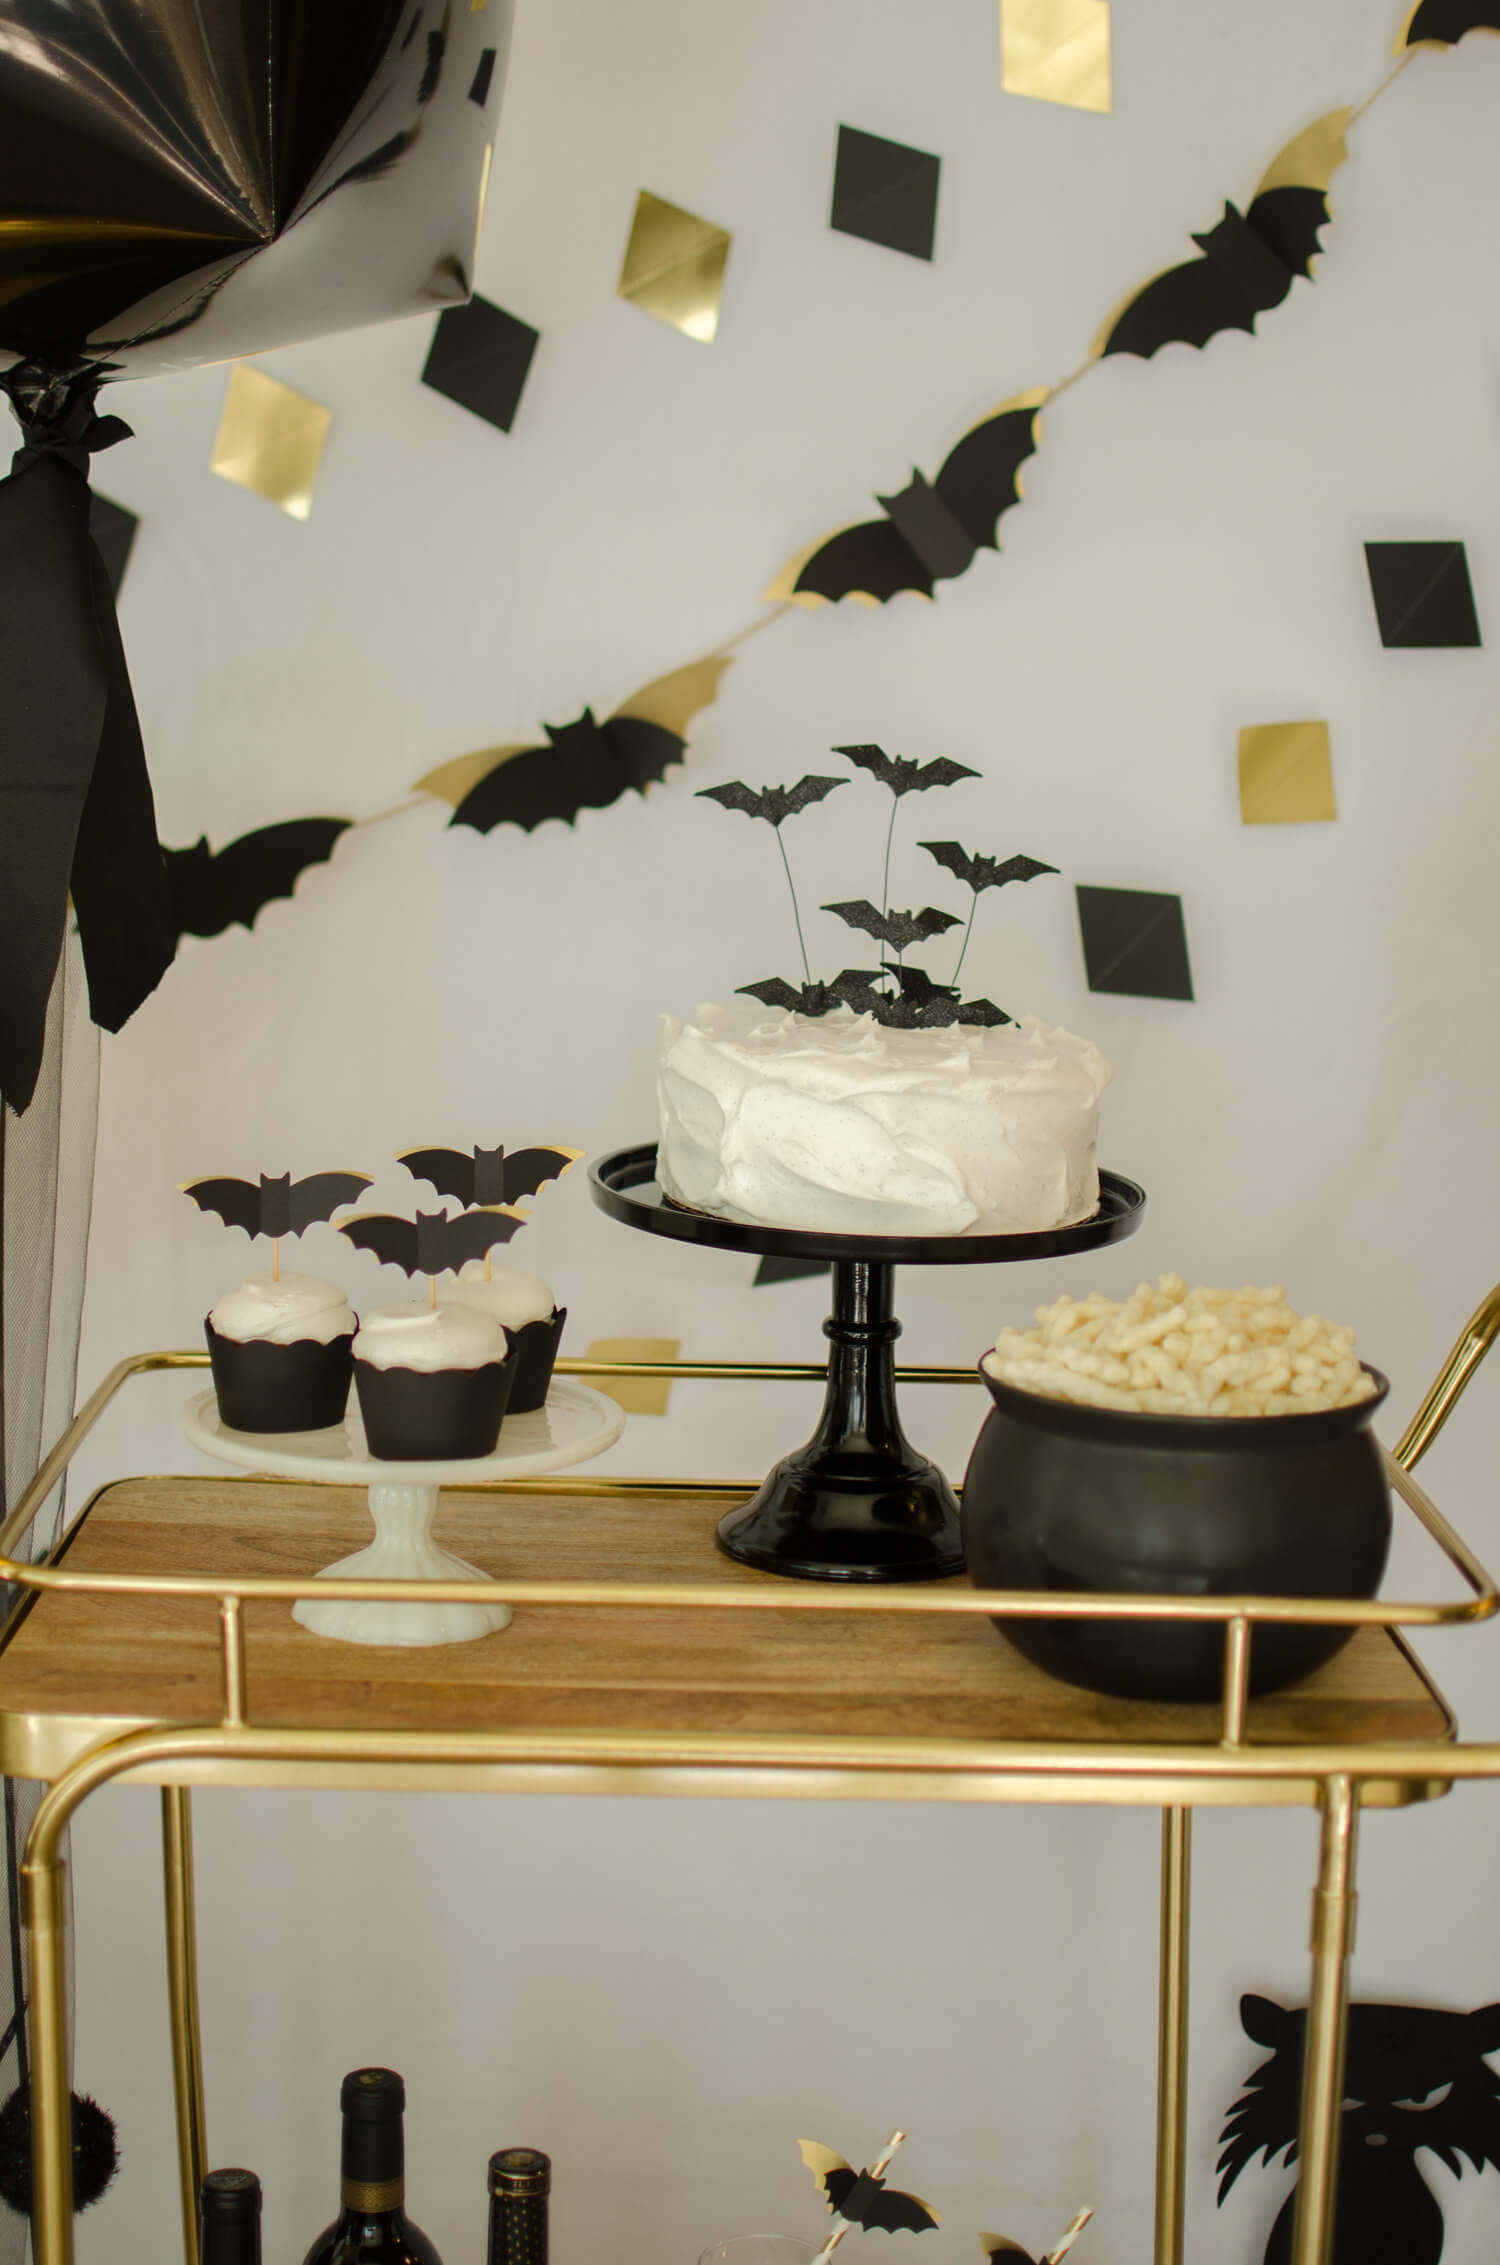 Fun Snacks at a Halloween Bash include Vanilla Cake and Cupcakes that have bat toppers. And, cheese puffs were served in a black cauldron to keep the Halloween theme going. Halloween Bar cart styling by party stylist Carolina of Mint Event Design. #partyideas #partyinspiration #halloween #cupcaketoppers #halloweensnacks